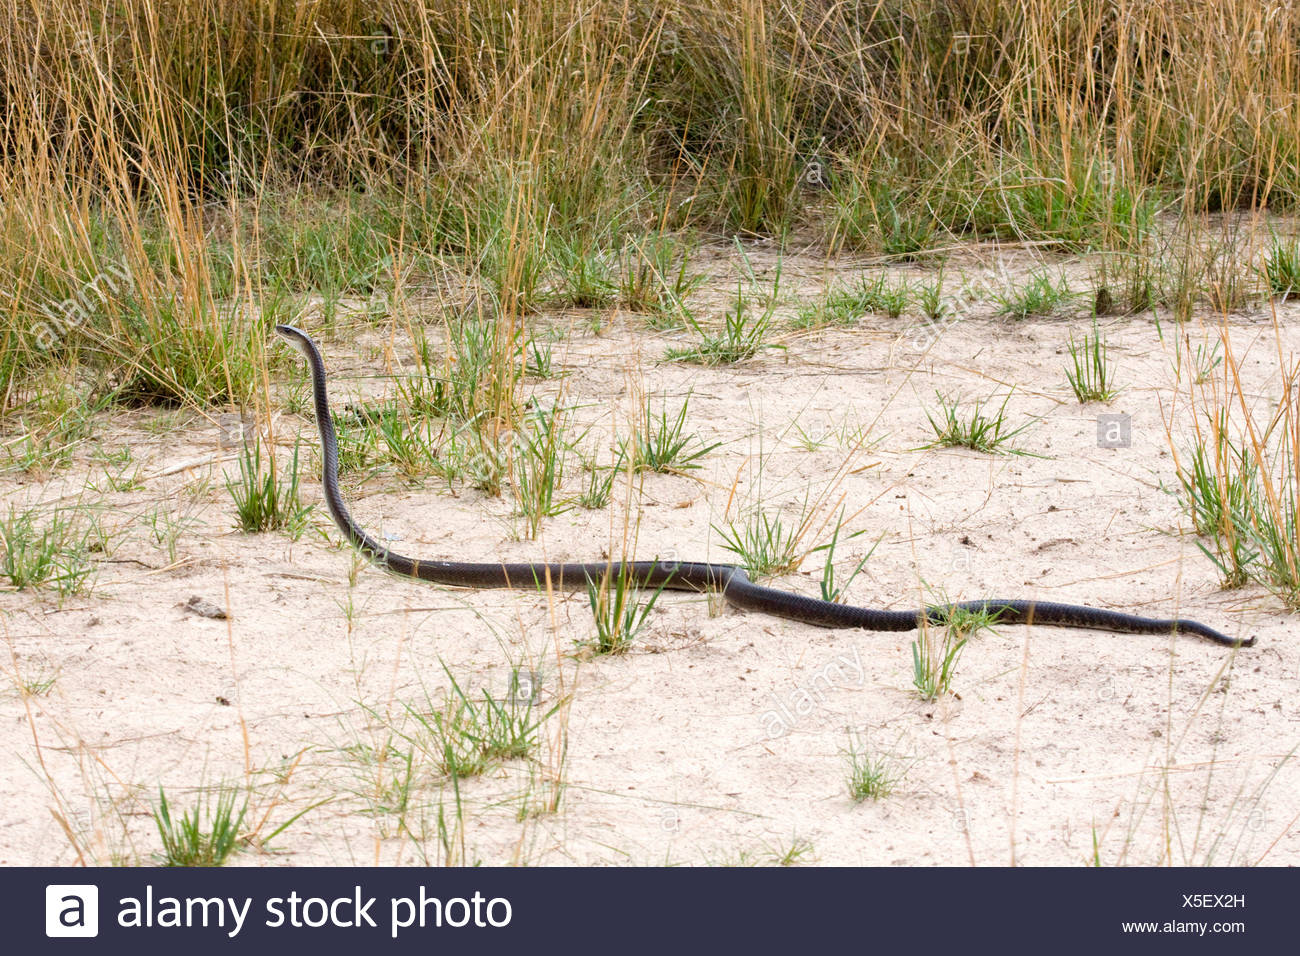 black mamba (Dendroaspis polylepis), on the feed on shore of a river, Namibia, Sambesi River - Stock Image